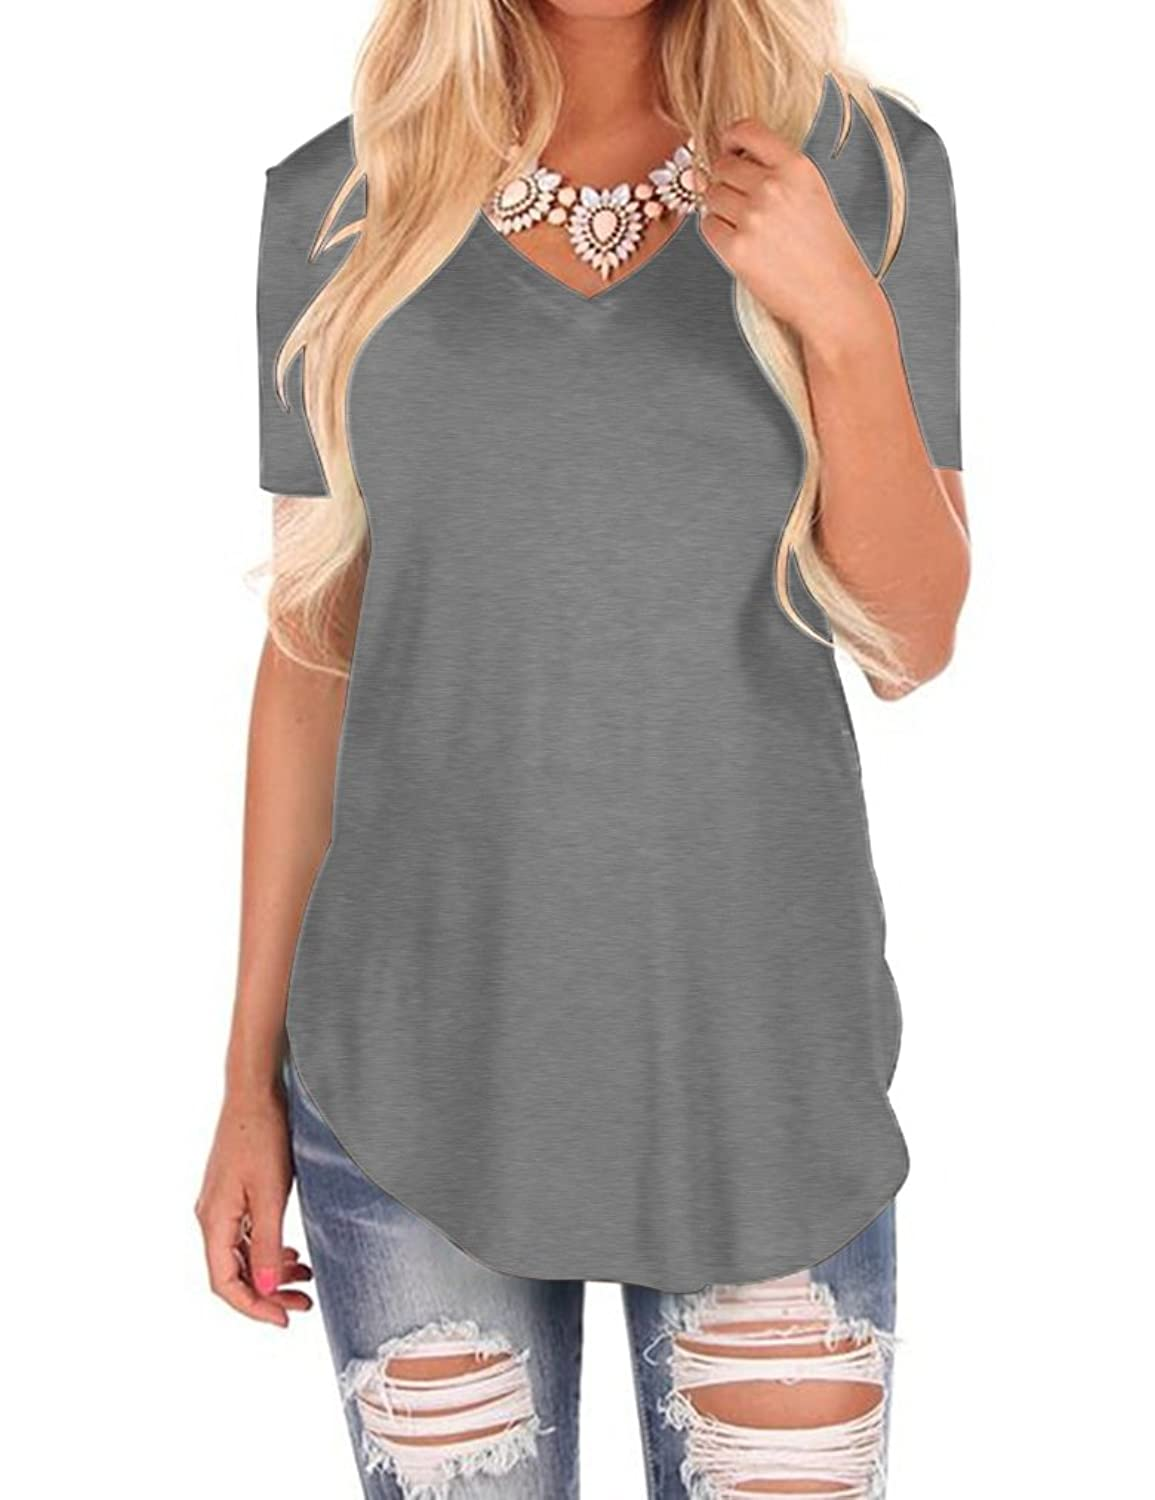 c691a05aa6f7c9 Chinabrands.com: Dropshipping & Wholesale cheap Uniboutique Womens Short  Sleeve V Neck T Shirts Tops Blouses online.